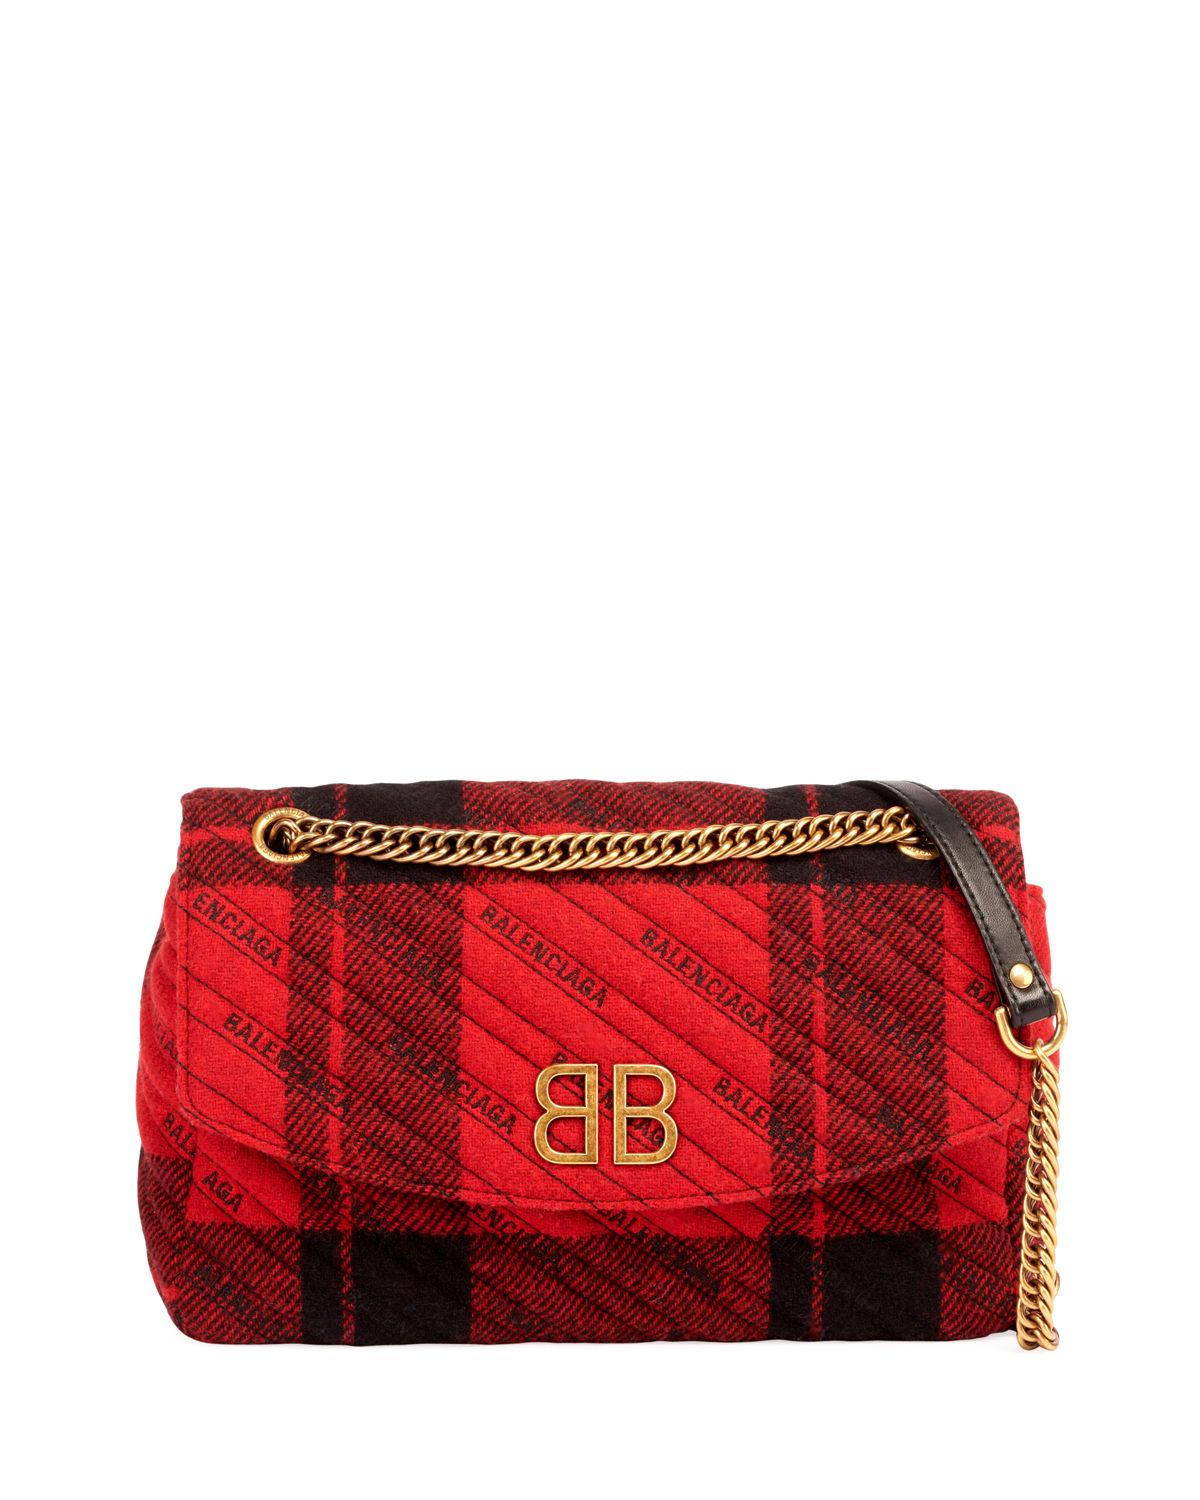 7b9c6f6426a3 Balenciaga Bb Chain Tweed Logo Wallet Shoulder Bag In Red Black ...